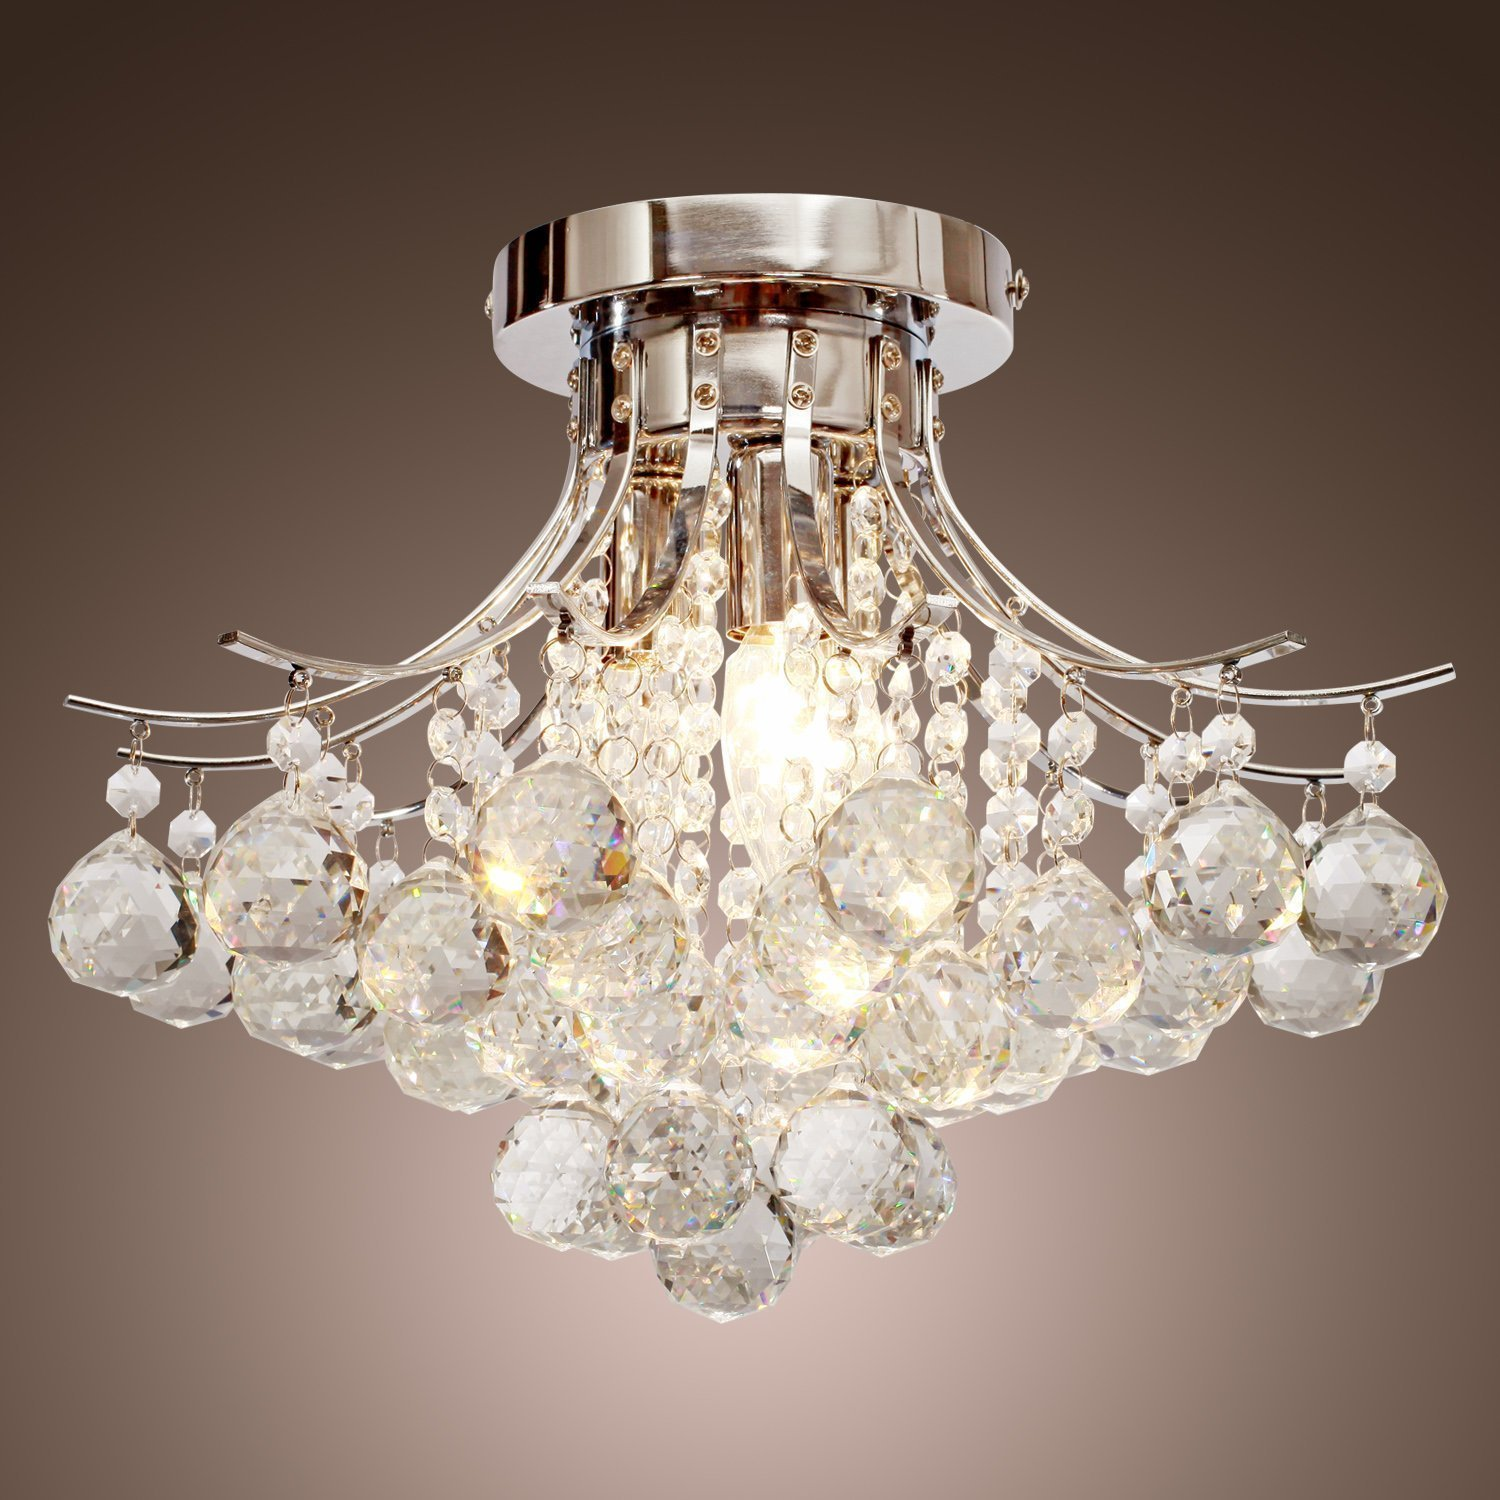 Loco chrome finish crystal chandelier with 3 lights mini style loco chrome finish crystal chandelier with 3 lights mini style flush mount ceiling light fixture for study roomoffice dining room bedroom mozeypictures Choice Image